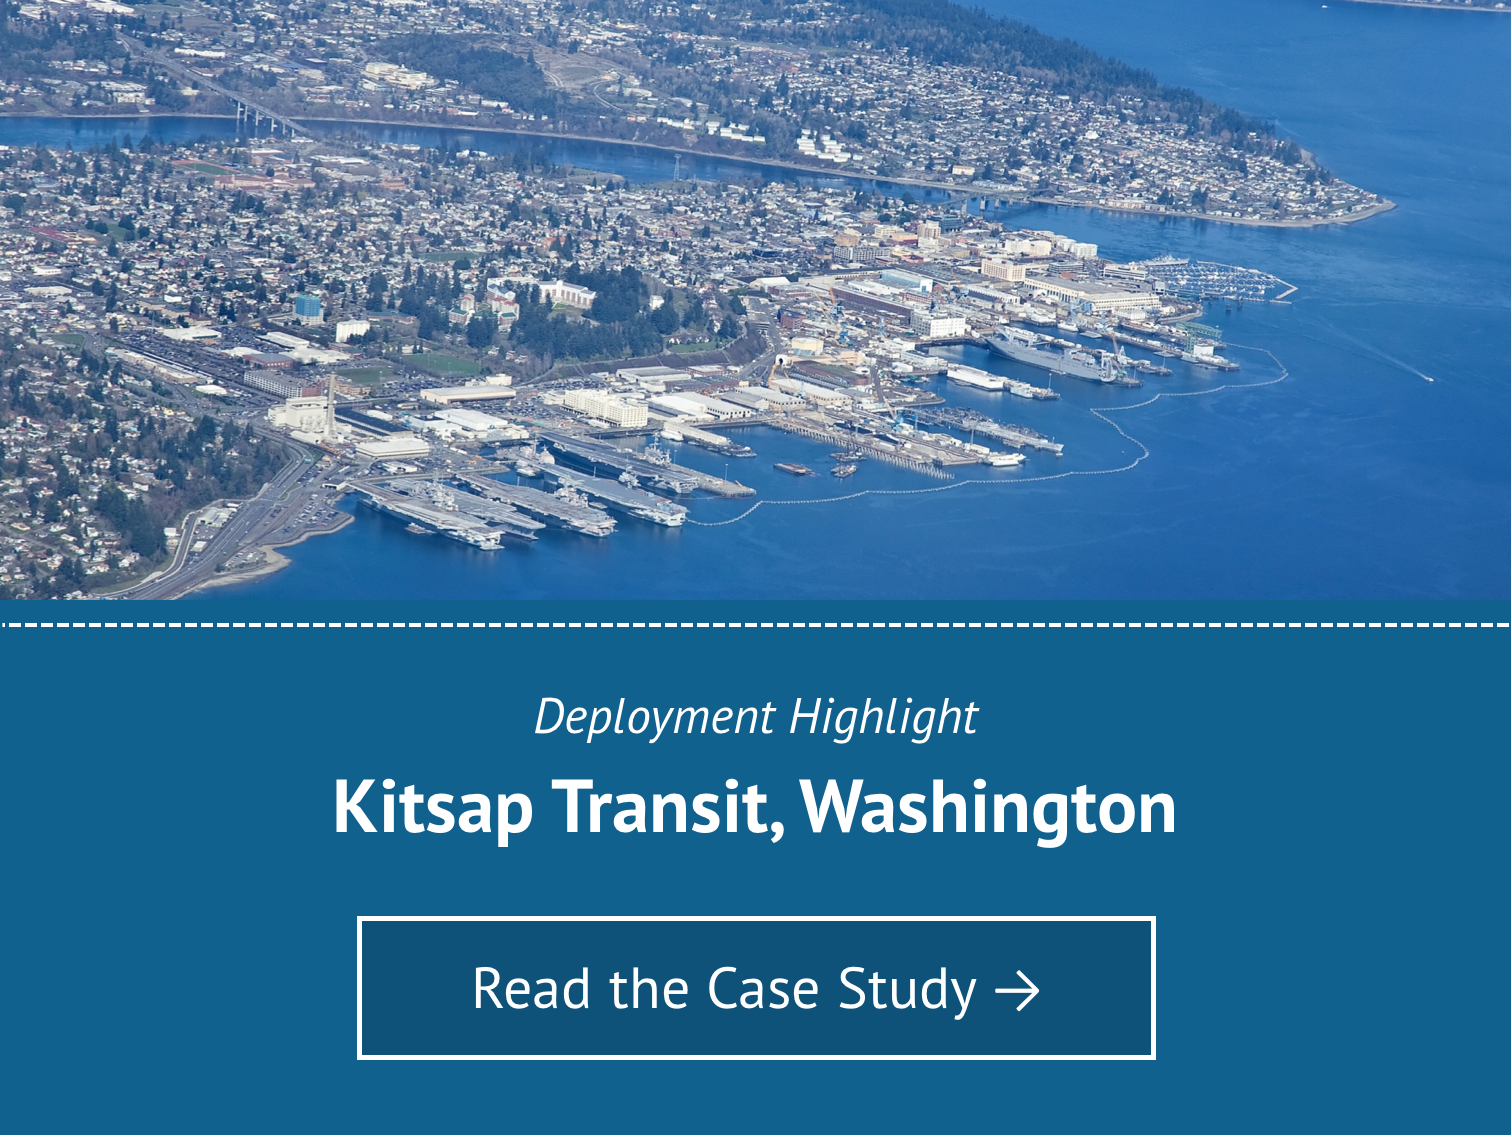 Deployment Highlight for Kitsap Transit Washington - Read the Case Study